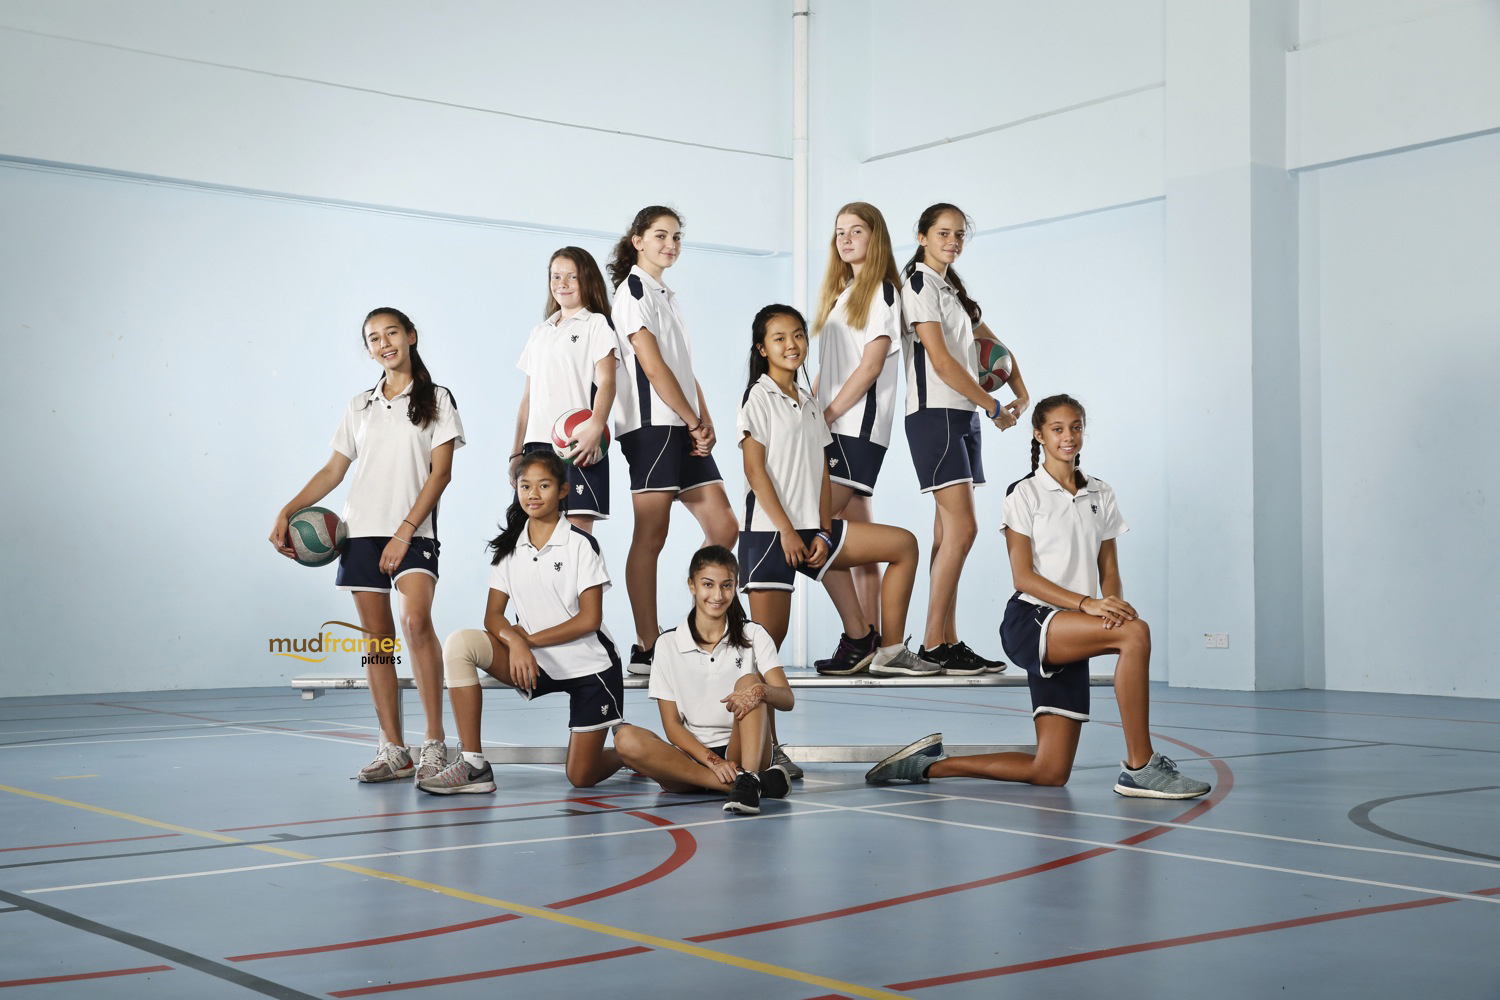 BSKL Volleyball Group Shot